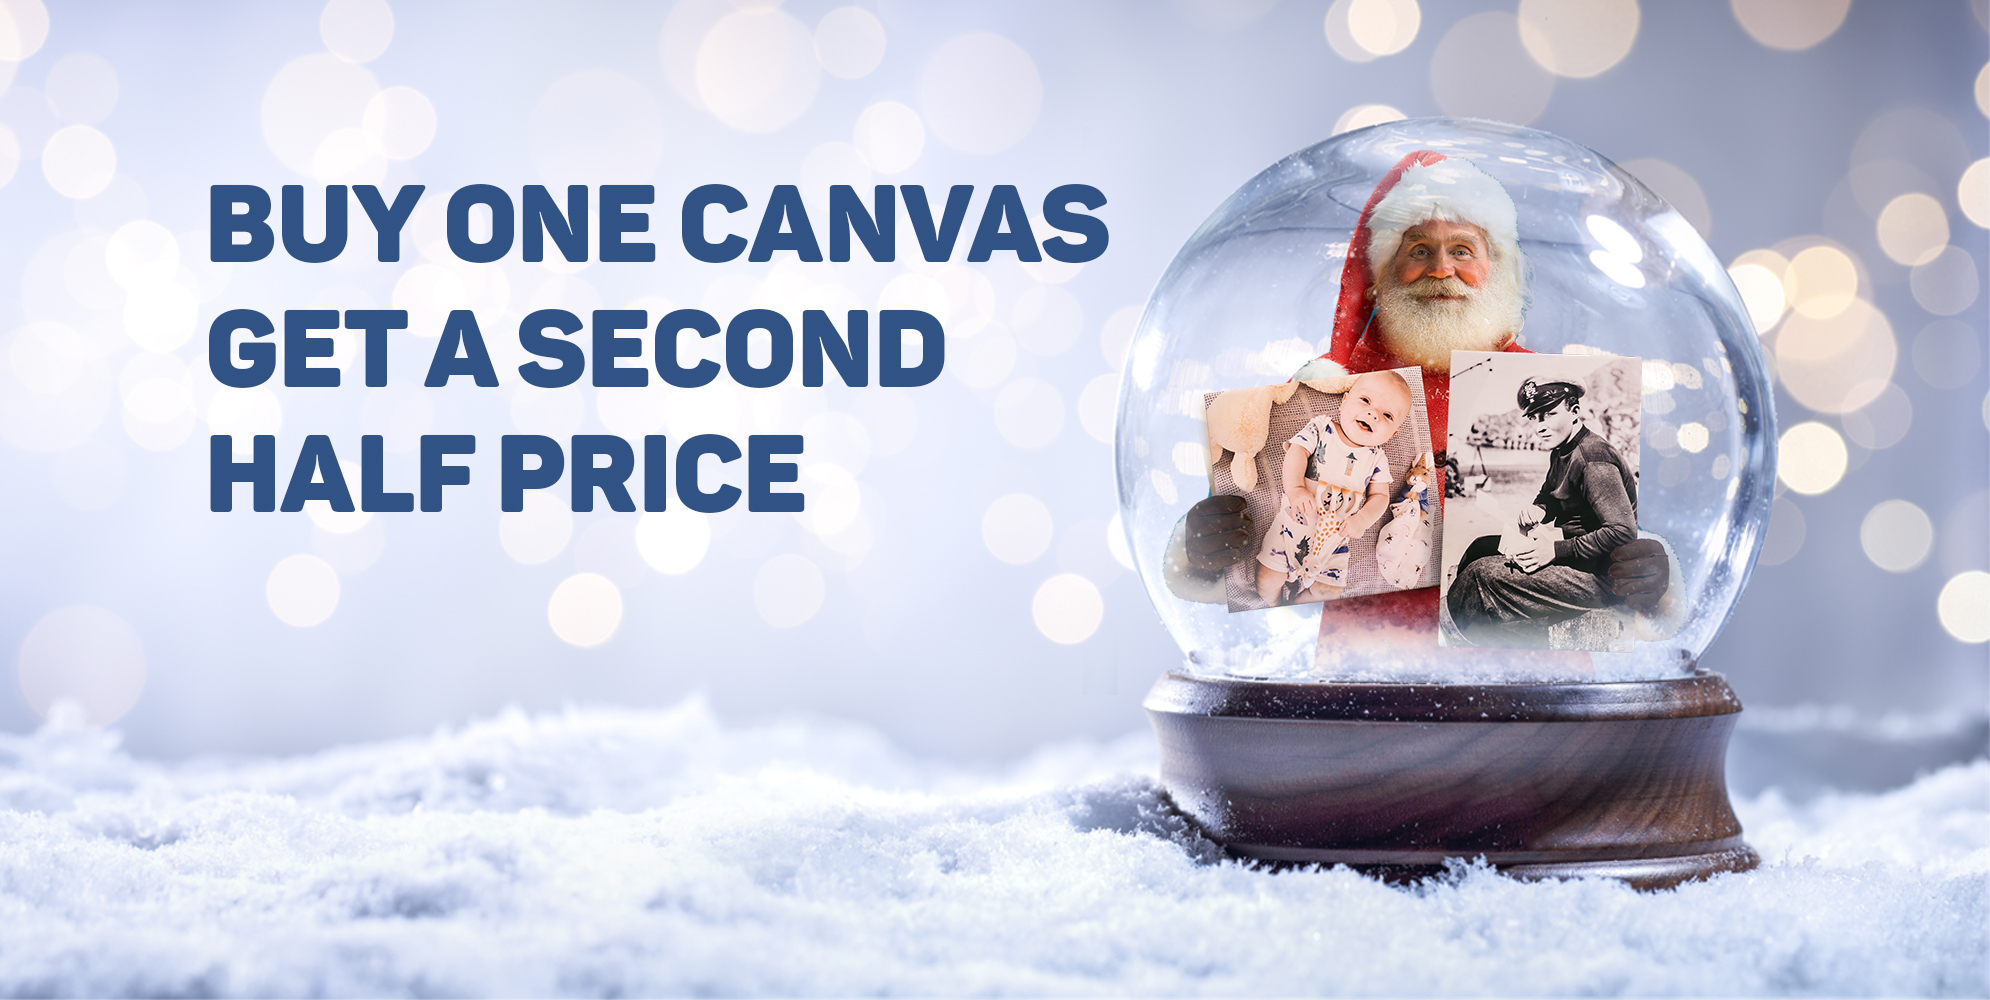 The Canvas Printing CompanyBuy One Canvas And Get A Second Half Price